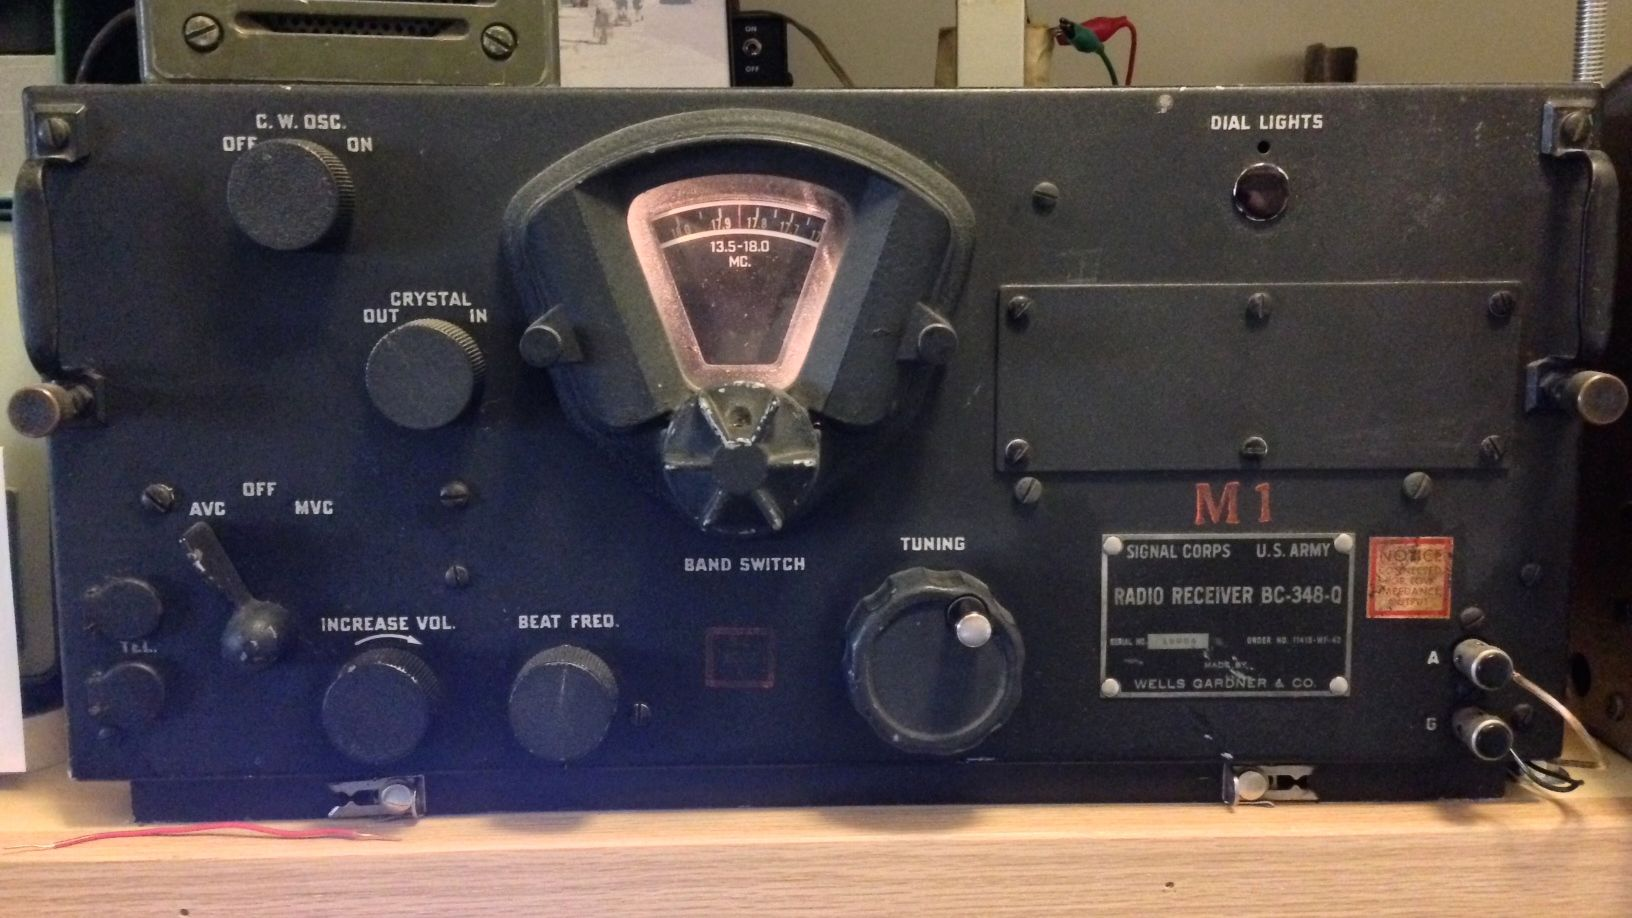 Swling With Heavy Metal My Signal Corps Bc 348 Q The